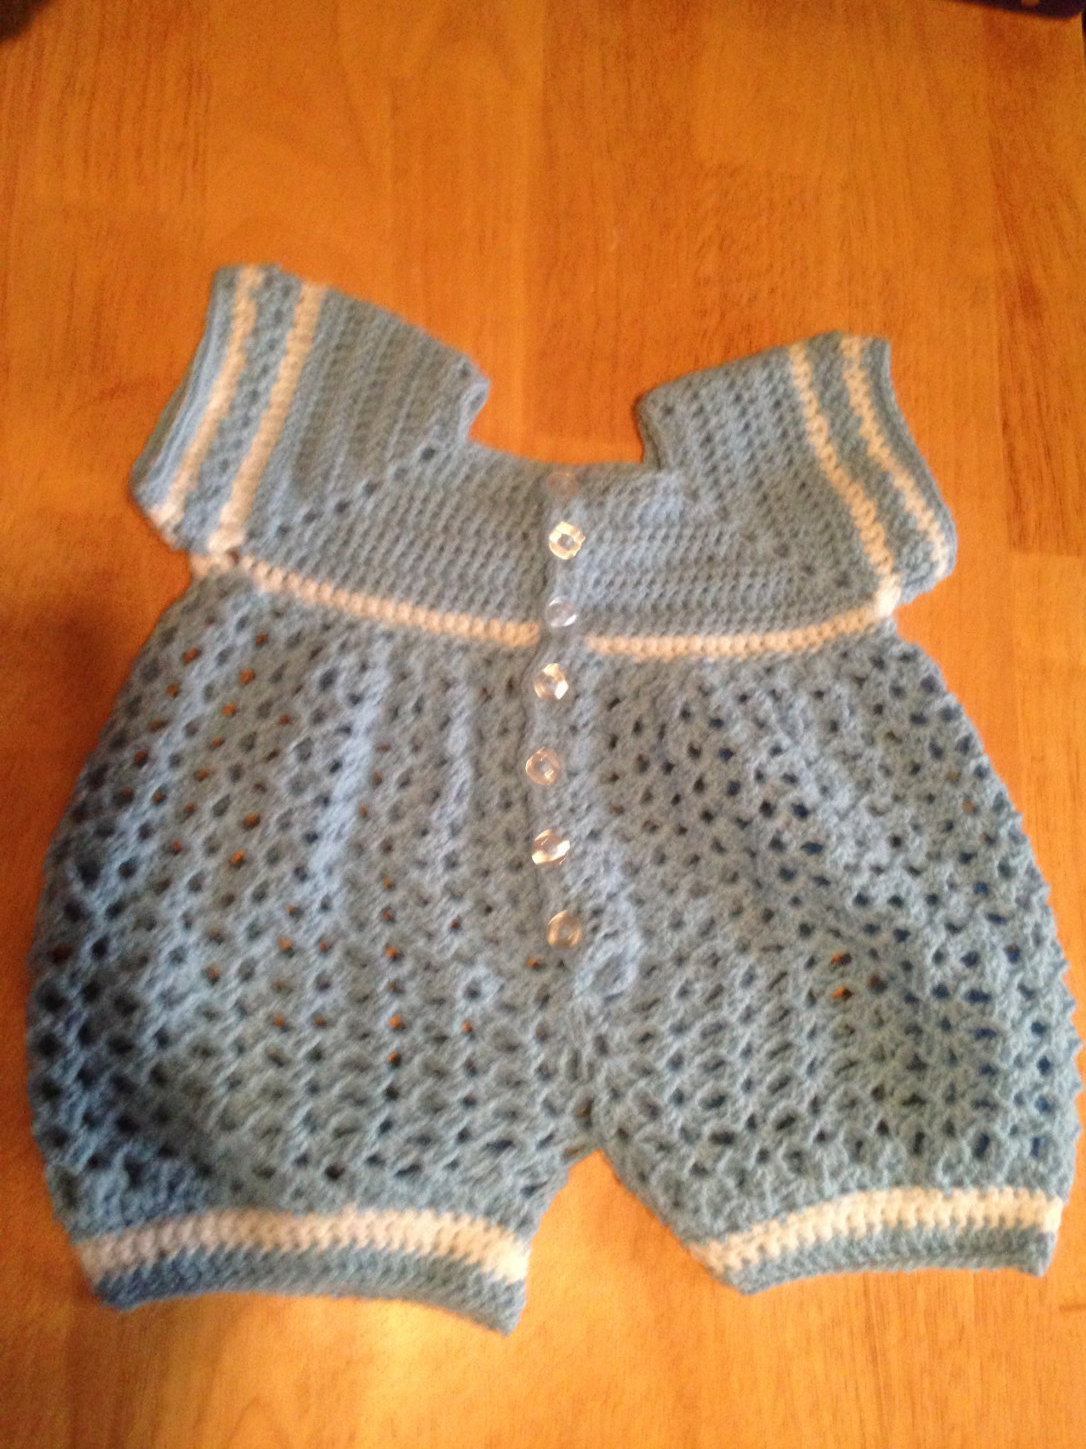 Lovely Crochet Baby Boy Romper Crochet Baby Clothes Crochet Crochet Baby Stuff Of Superb 43 Models Crochet Baby Stuff